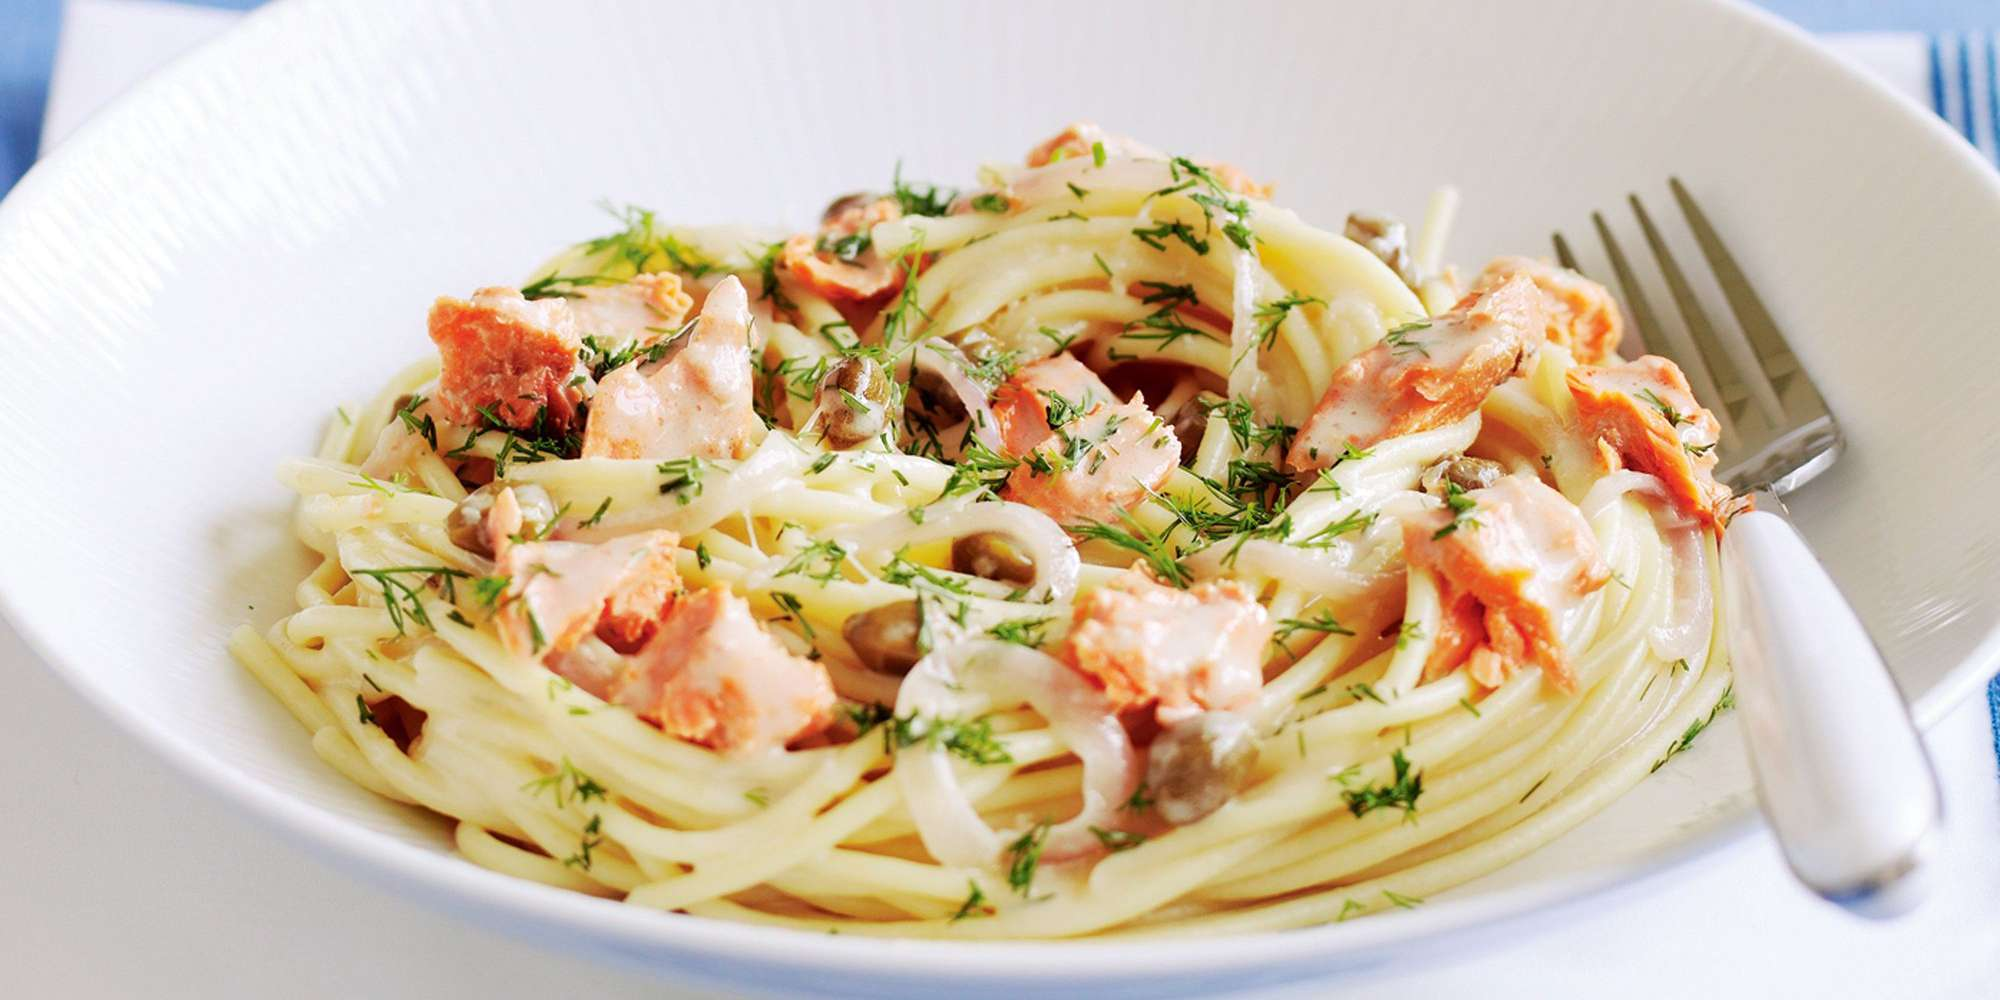 Linguine with Salmon, Leek and Dill